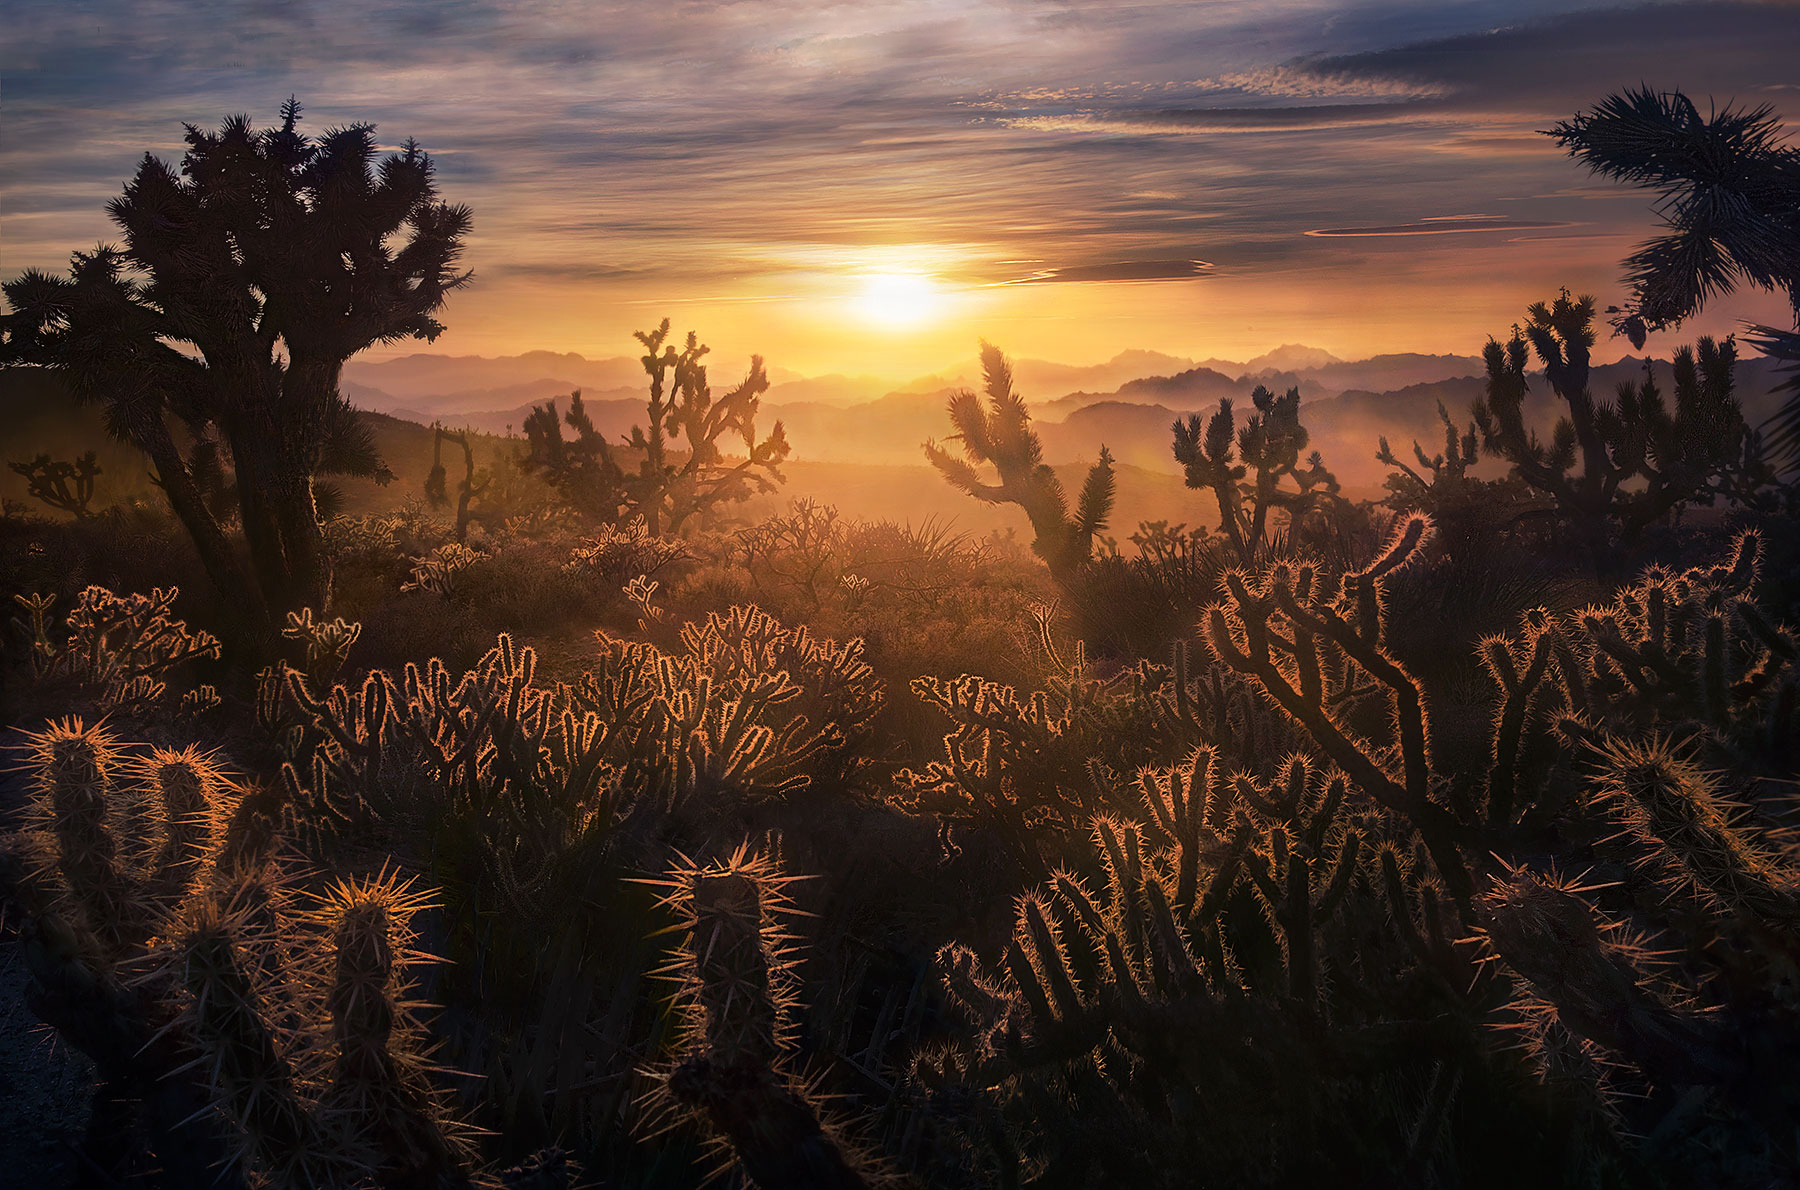 Mojave, Cactus, Joshua Tree, Sunset, Desert, California , photo